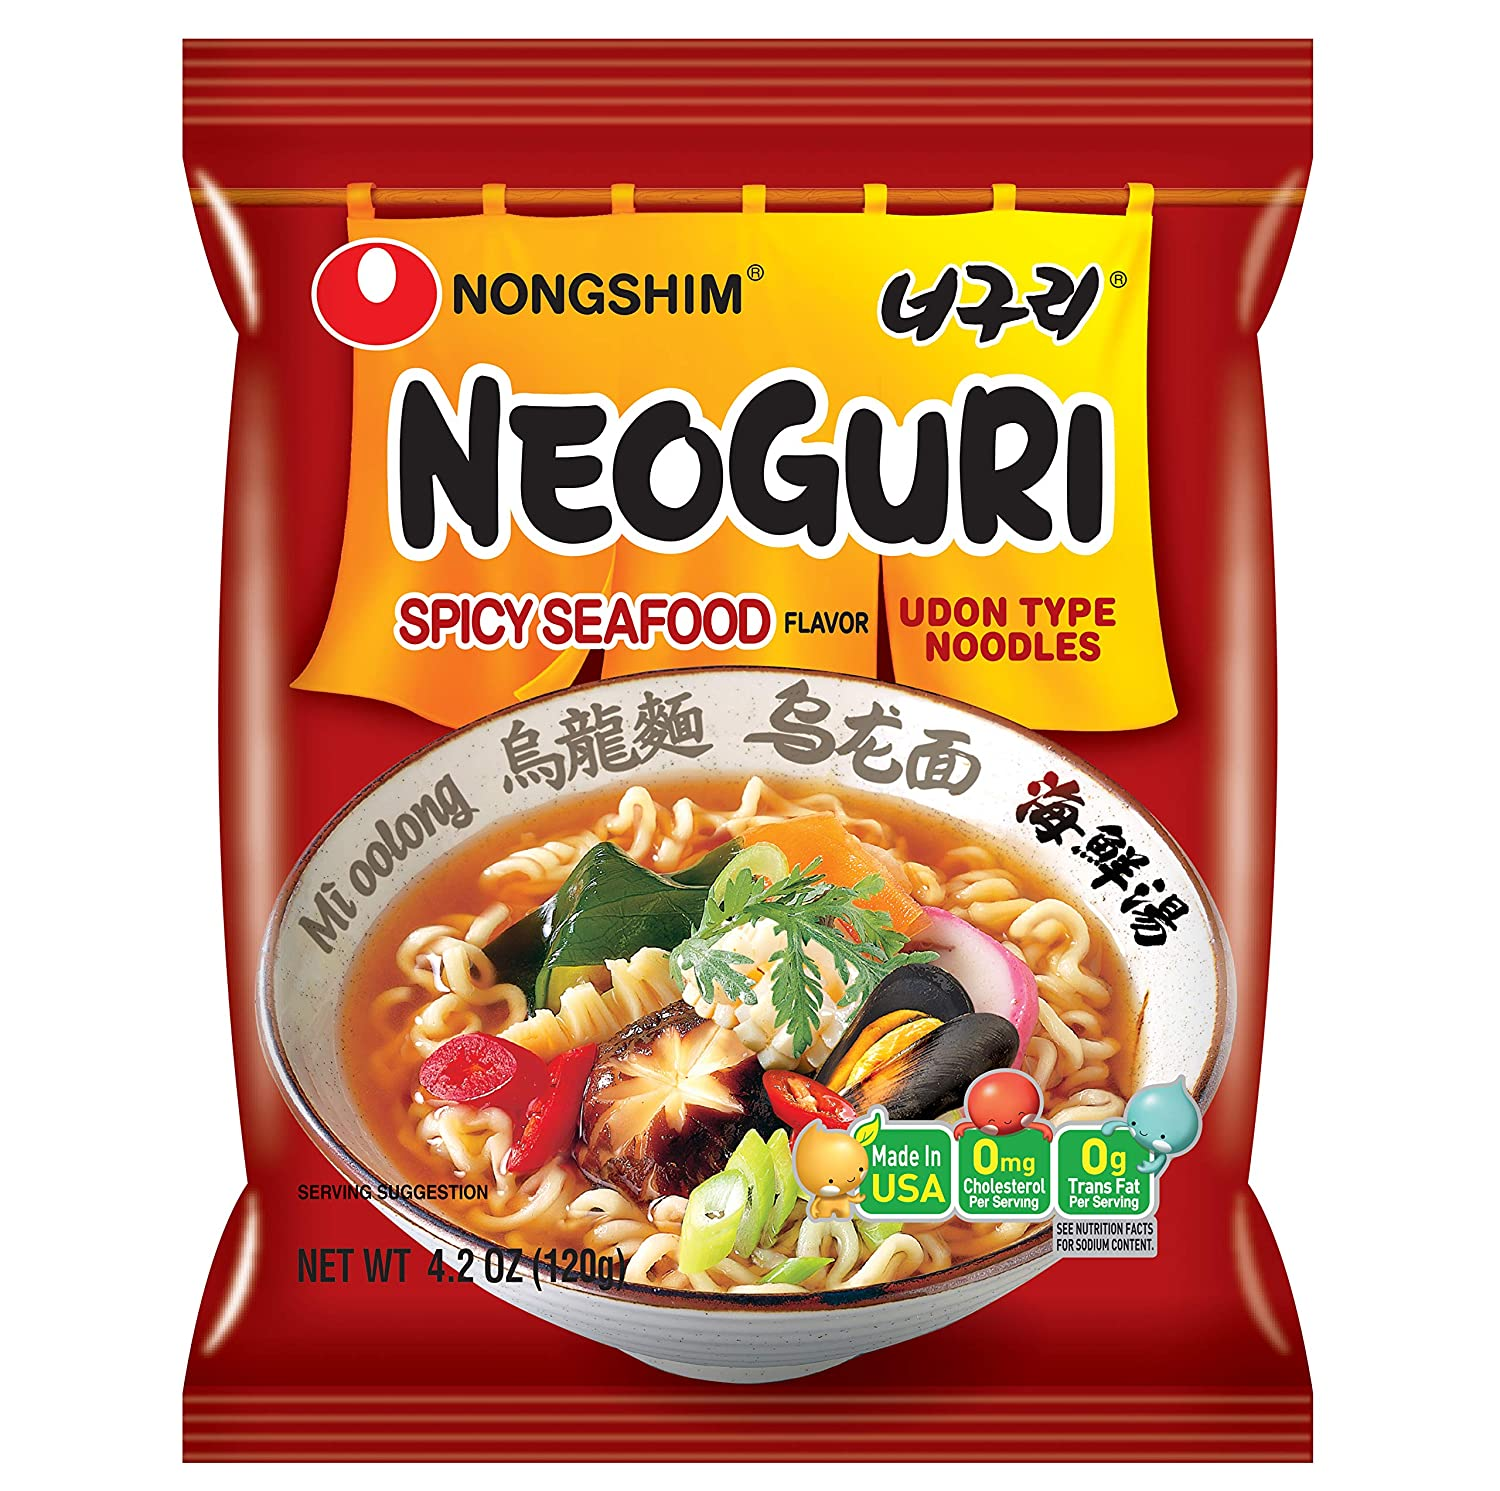 Nongshim Neoguri Noodles, Spicy Seafood, 4.2 Ounce (Pack of 10)